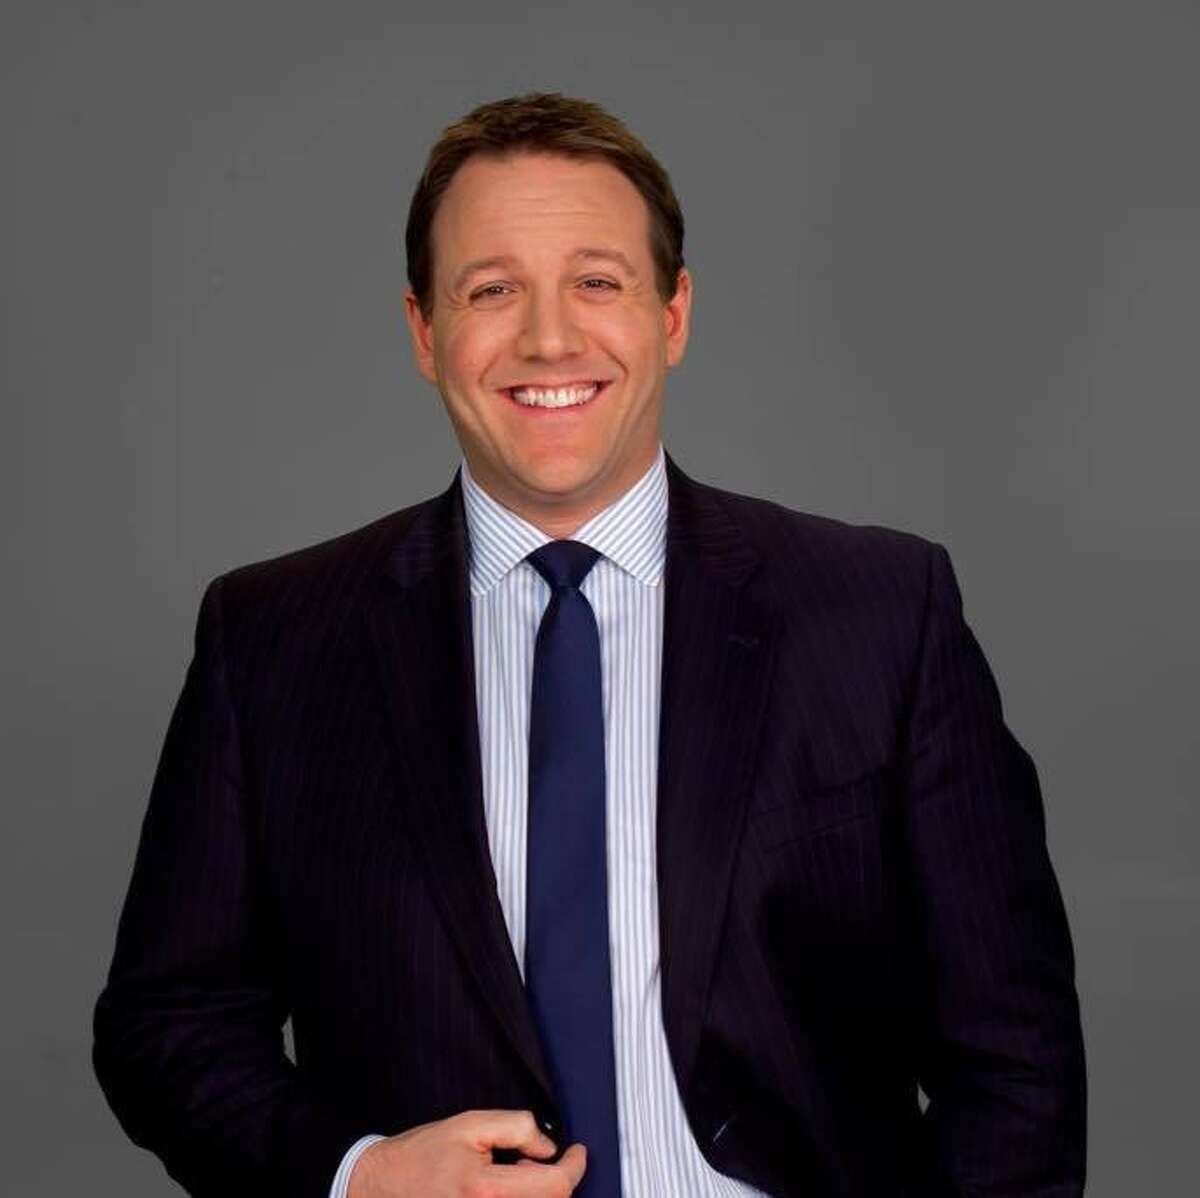 Click through the slideshow for 20 things you don't know about Ryan Peterson, morning anchor at News10 ABC.